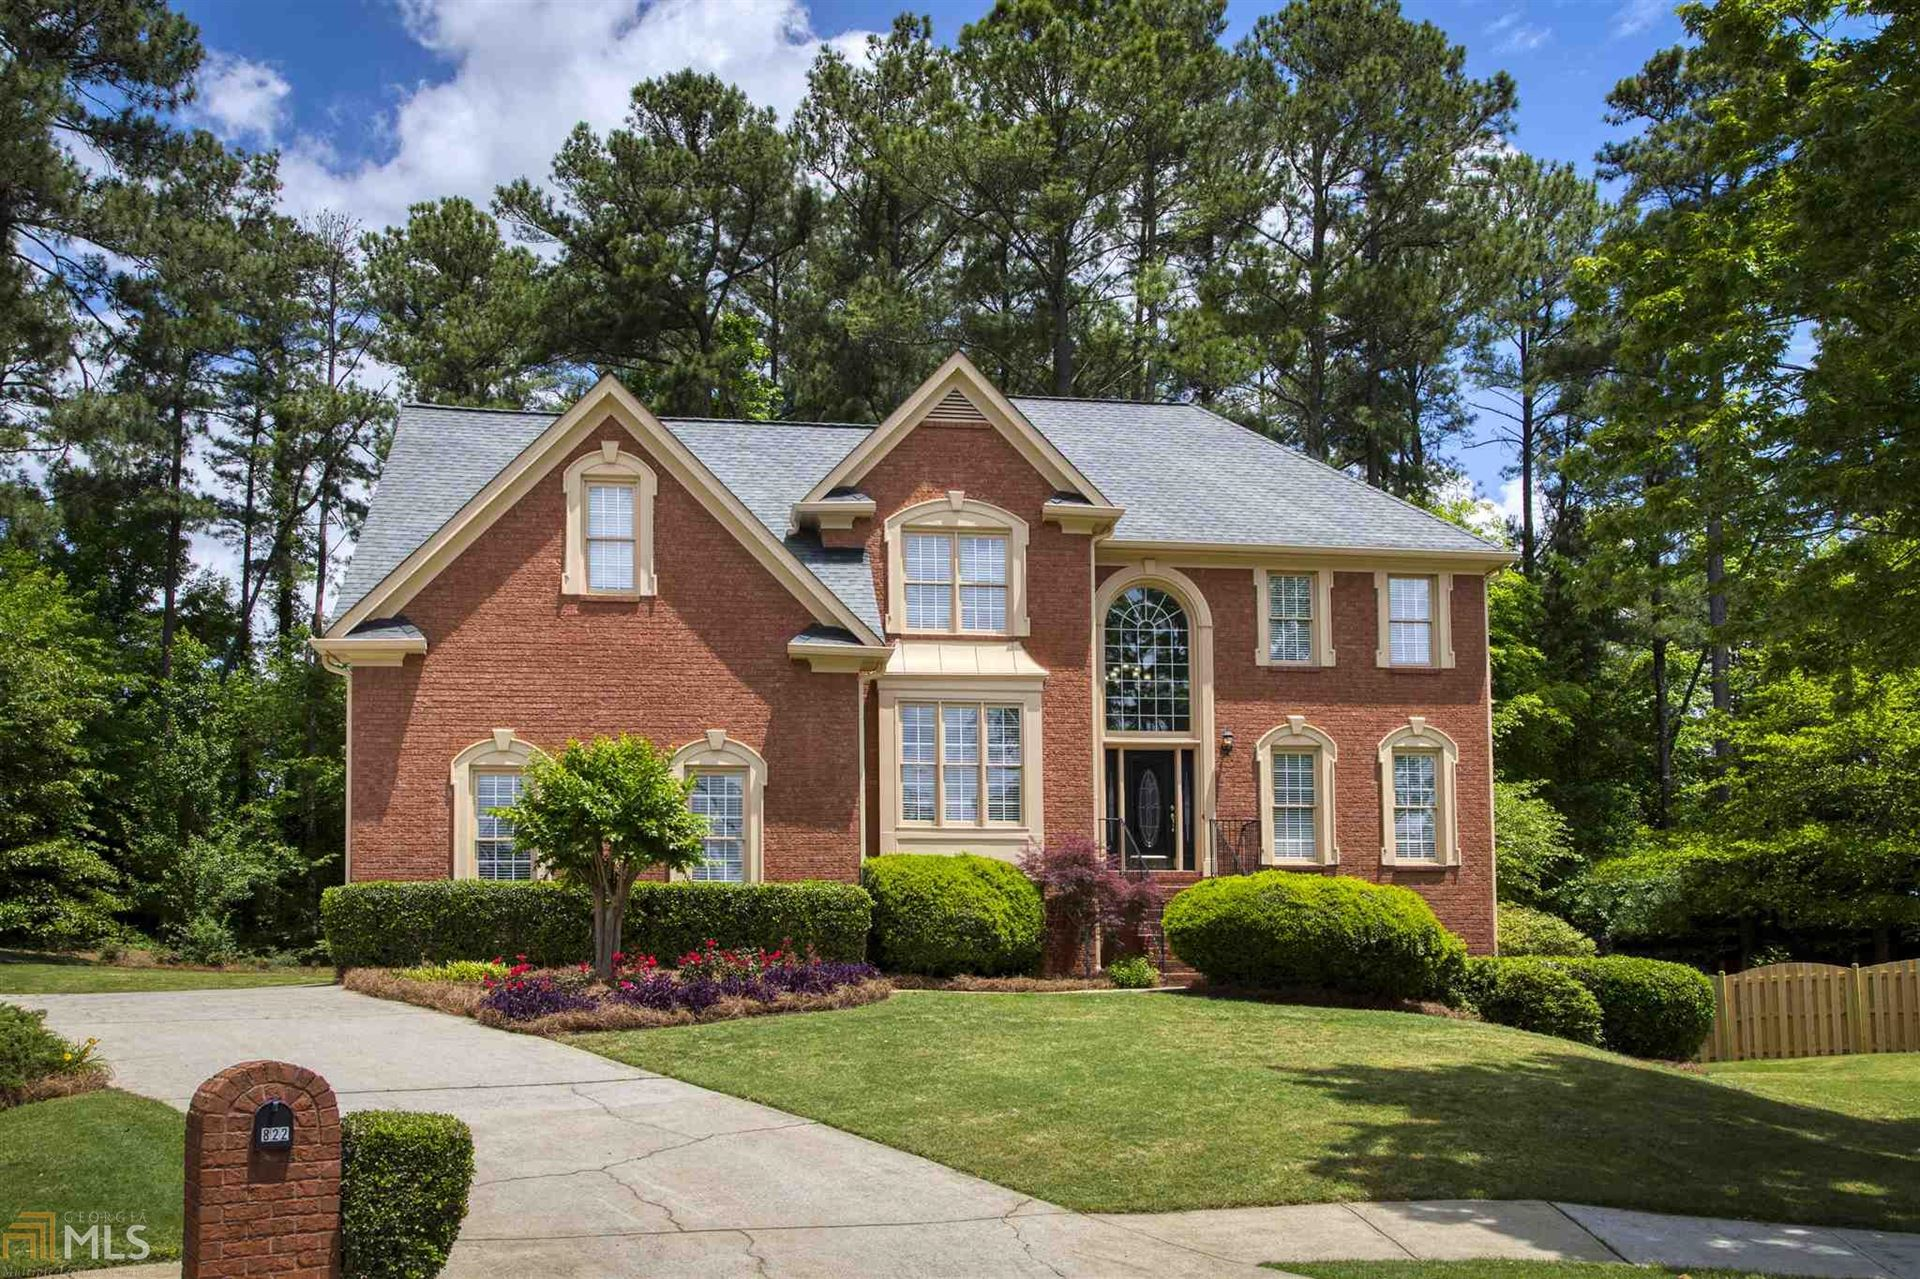 822 Forest Path Ln, Alpharetta, GA 30022 - #: 8744324